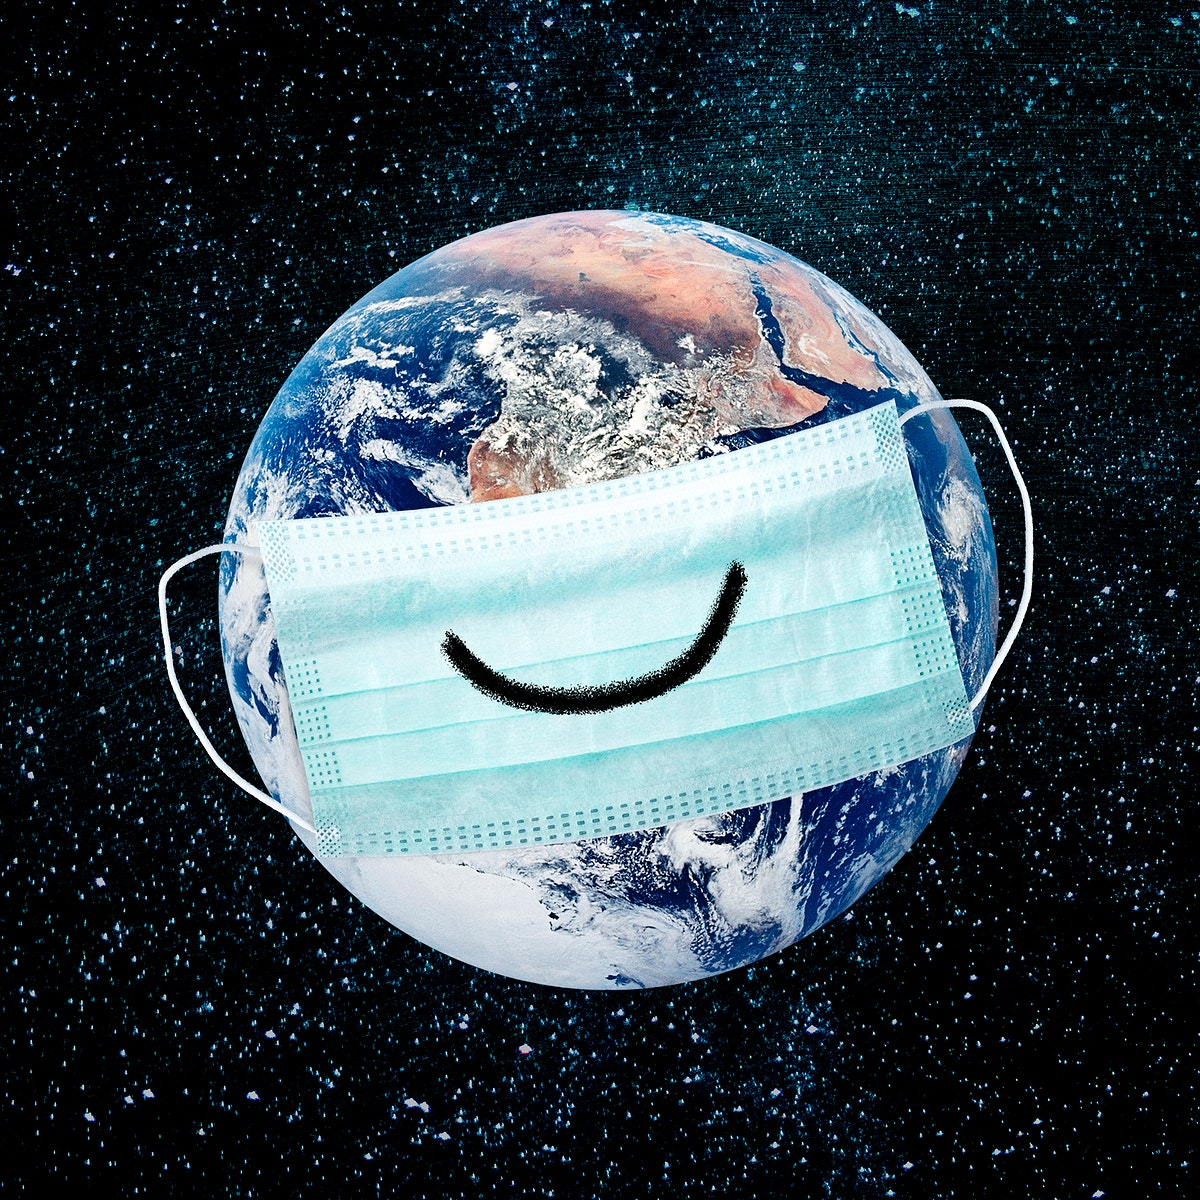 Planet earth wearing a face mask during coronavirus pandemic